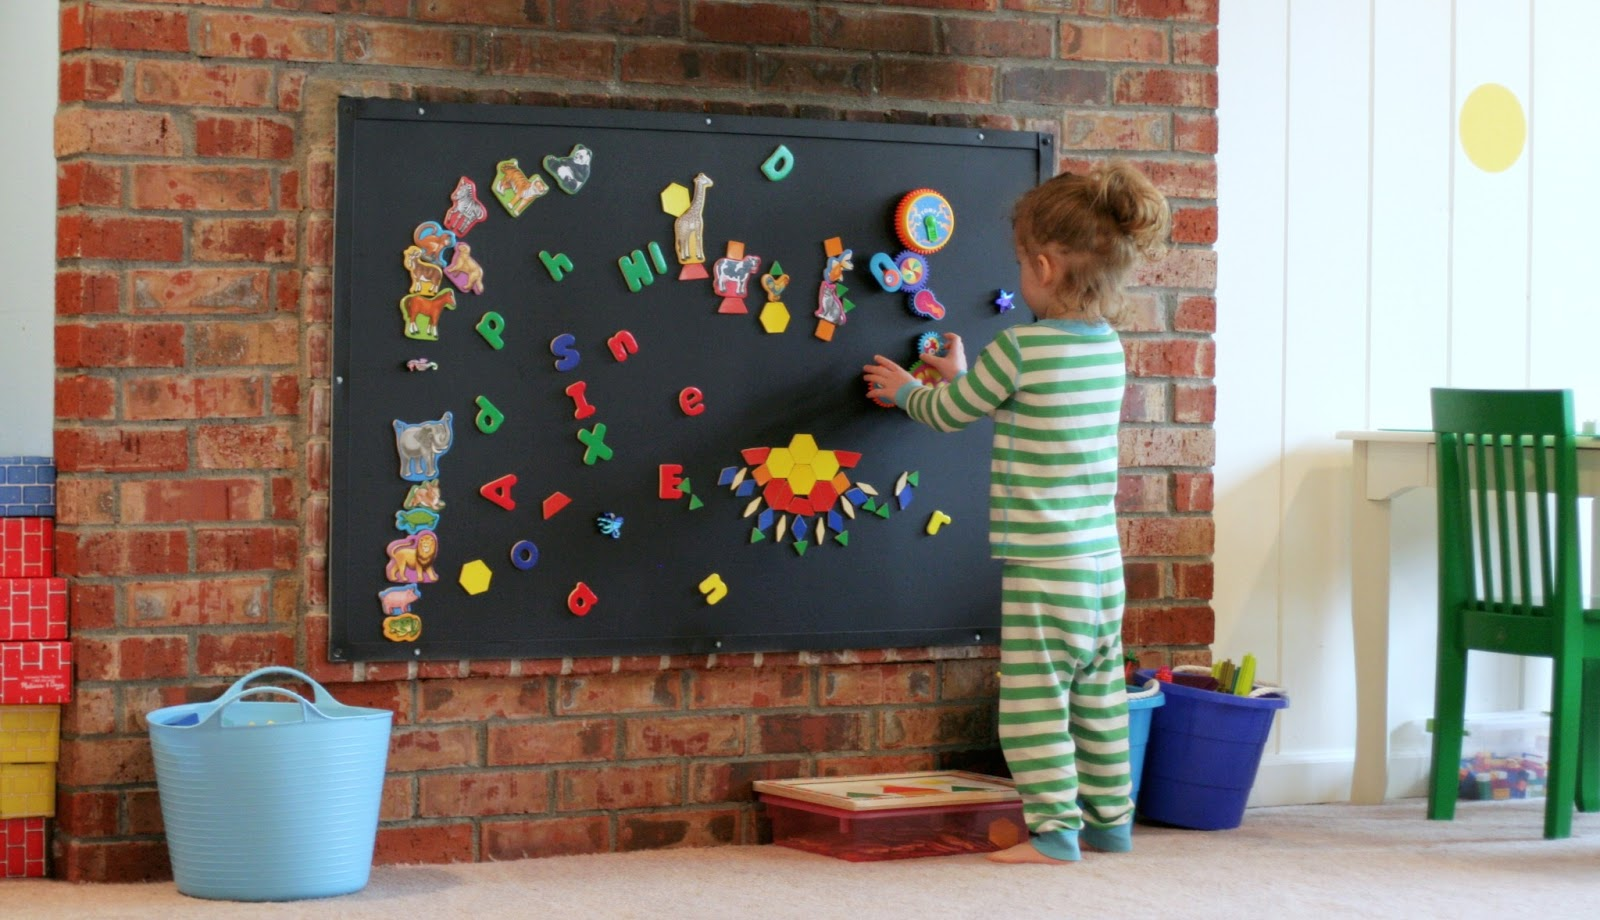 Playroom Design: DIY Playroom with Rock Wall